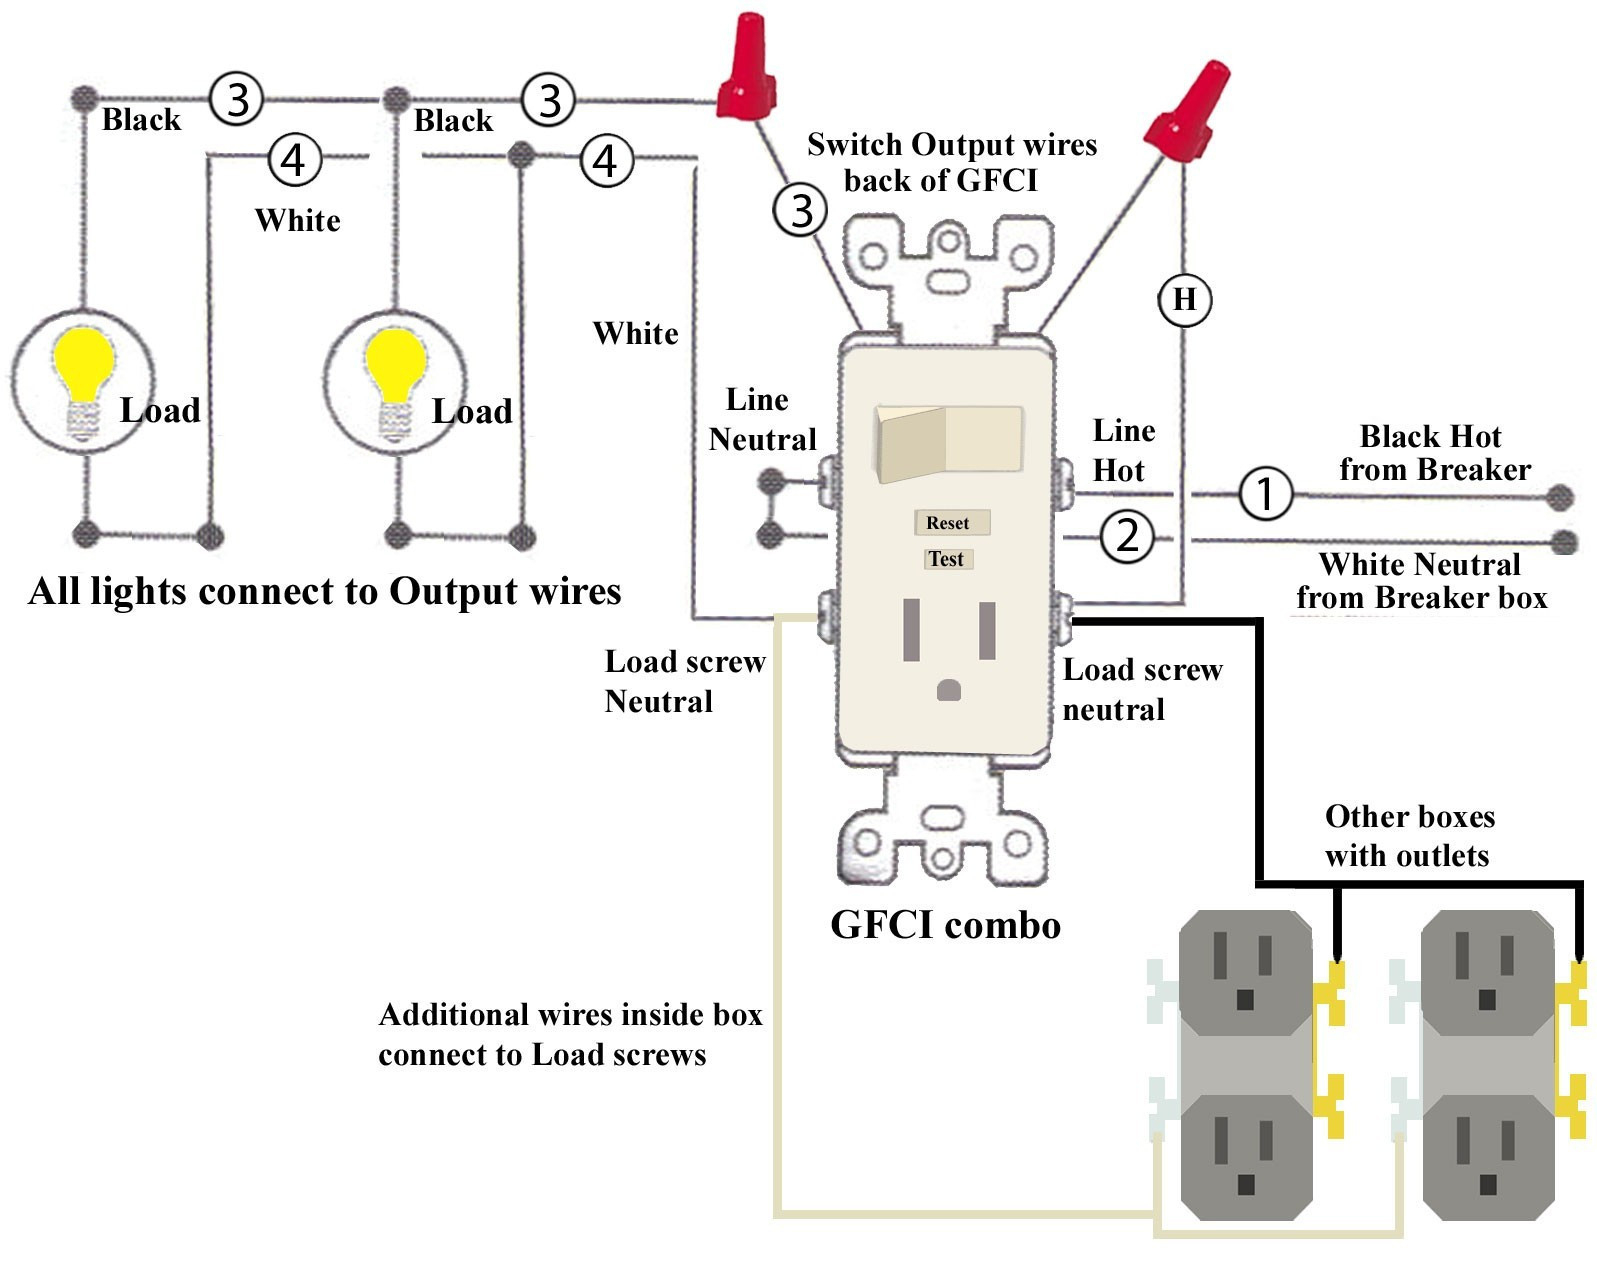 Outlet Switch Combo Wiring Diagram Fresh Wiring Diagram Switch - Switched Outlet Wiring Diagram